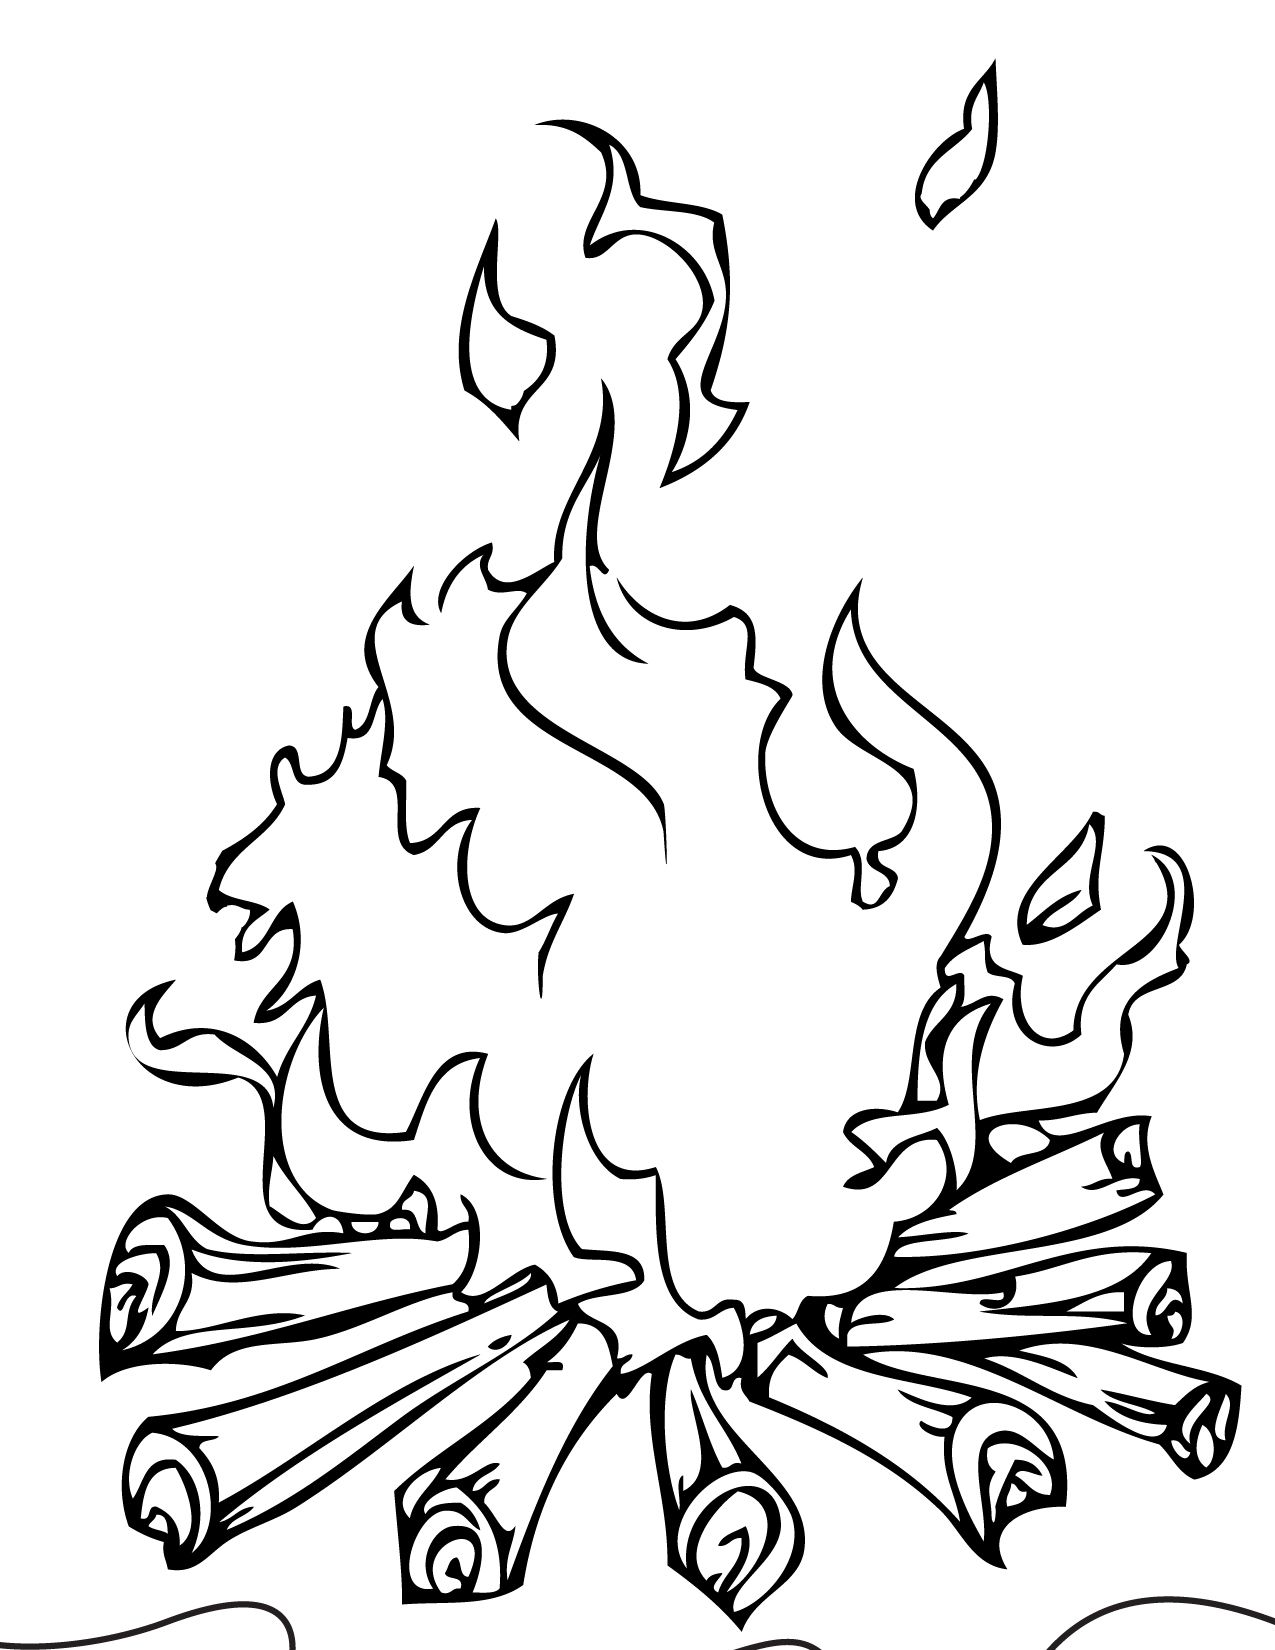 Fire Coloring Page Coloriage Id 14198 : Uncategorized